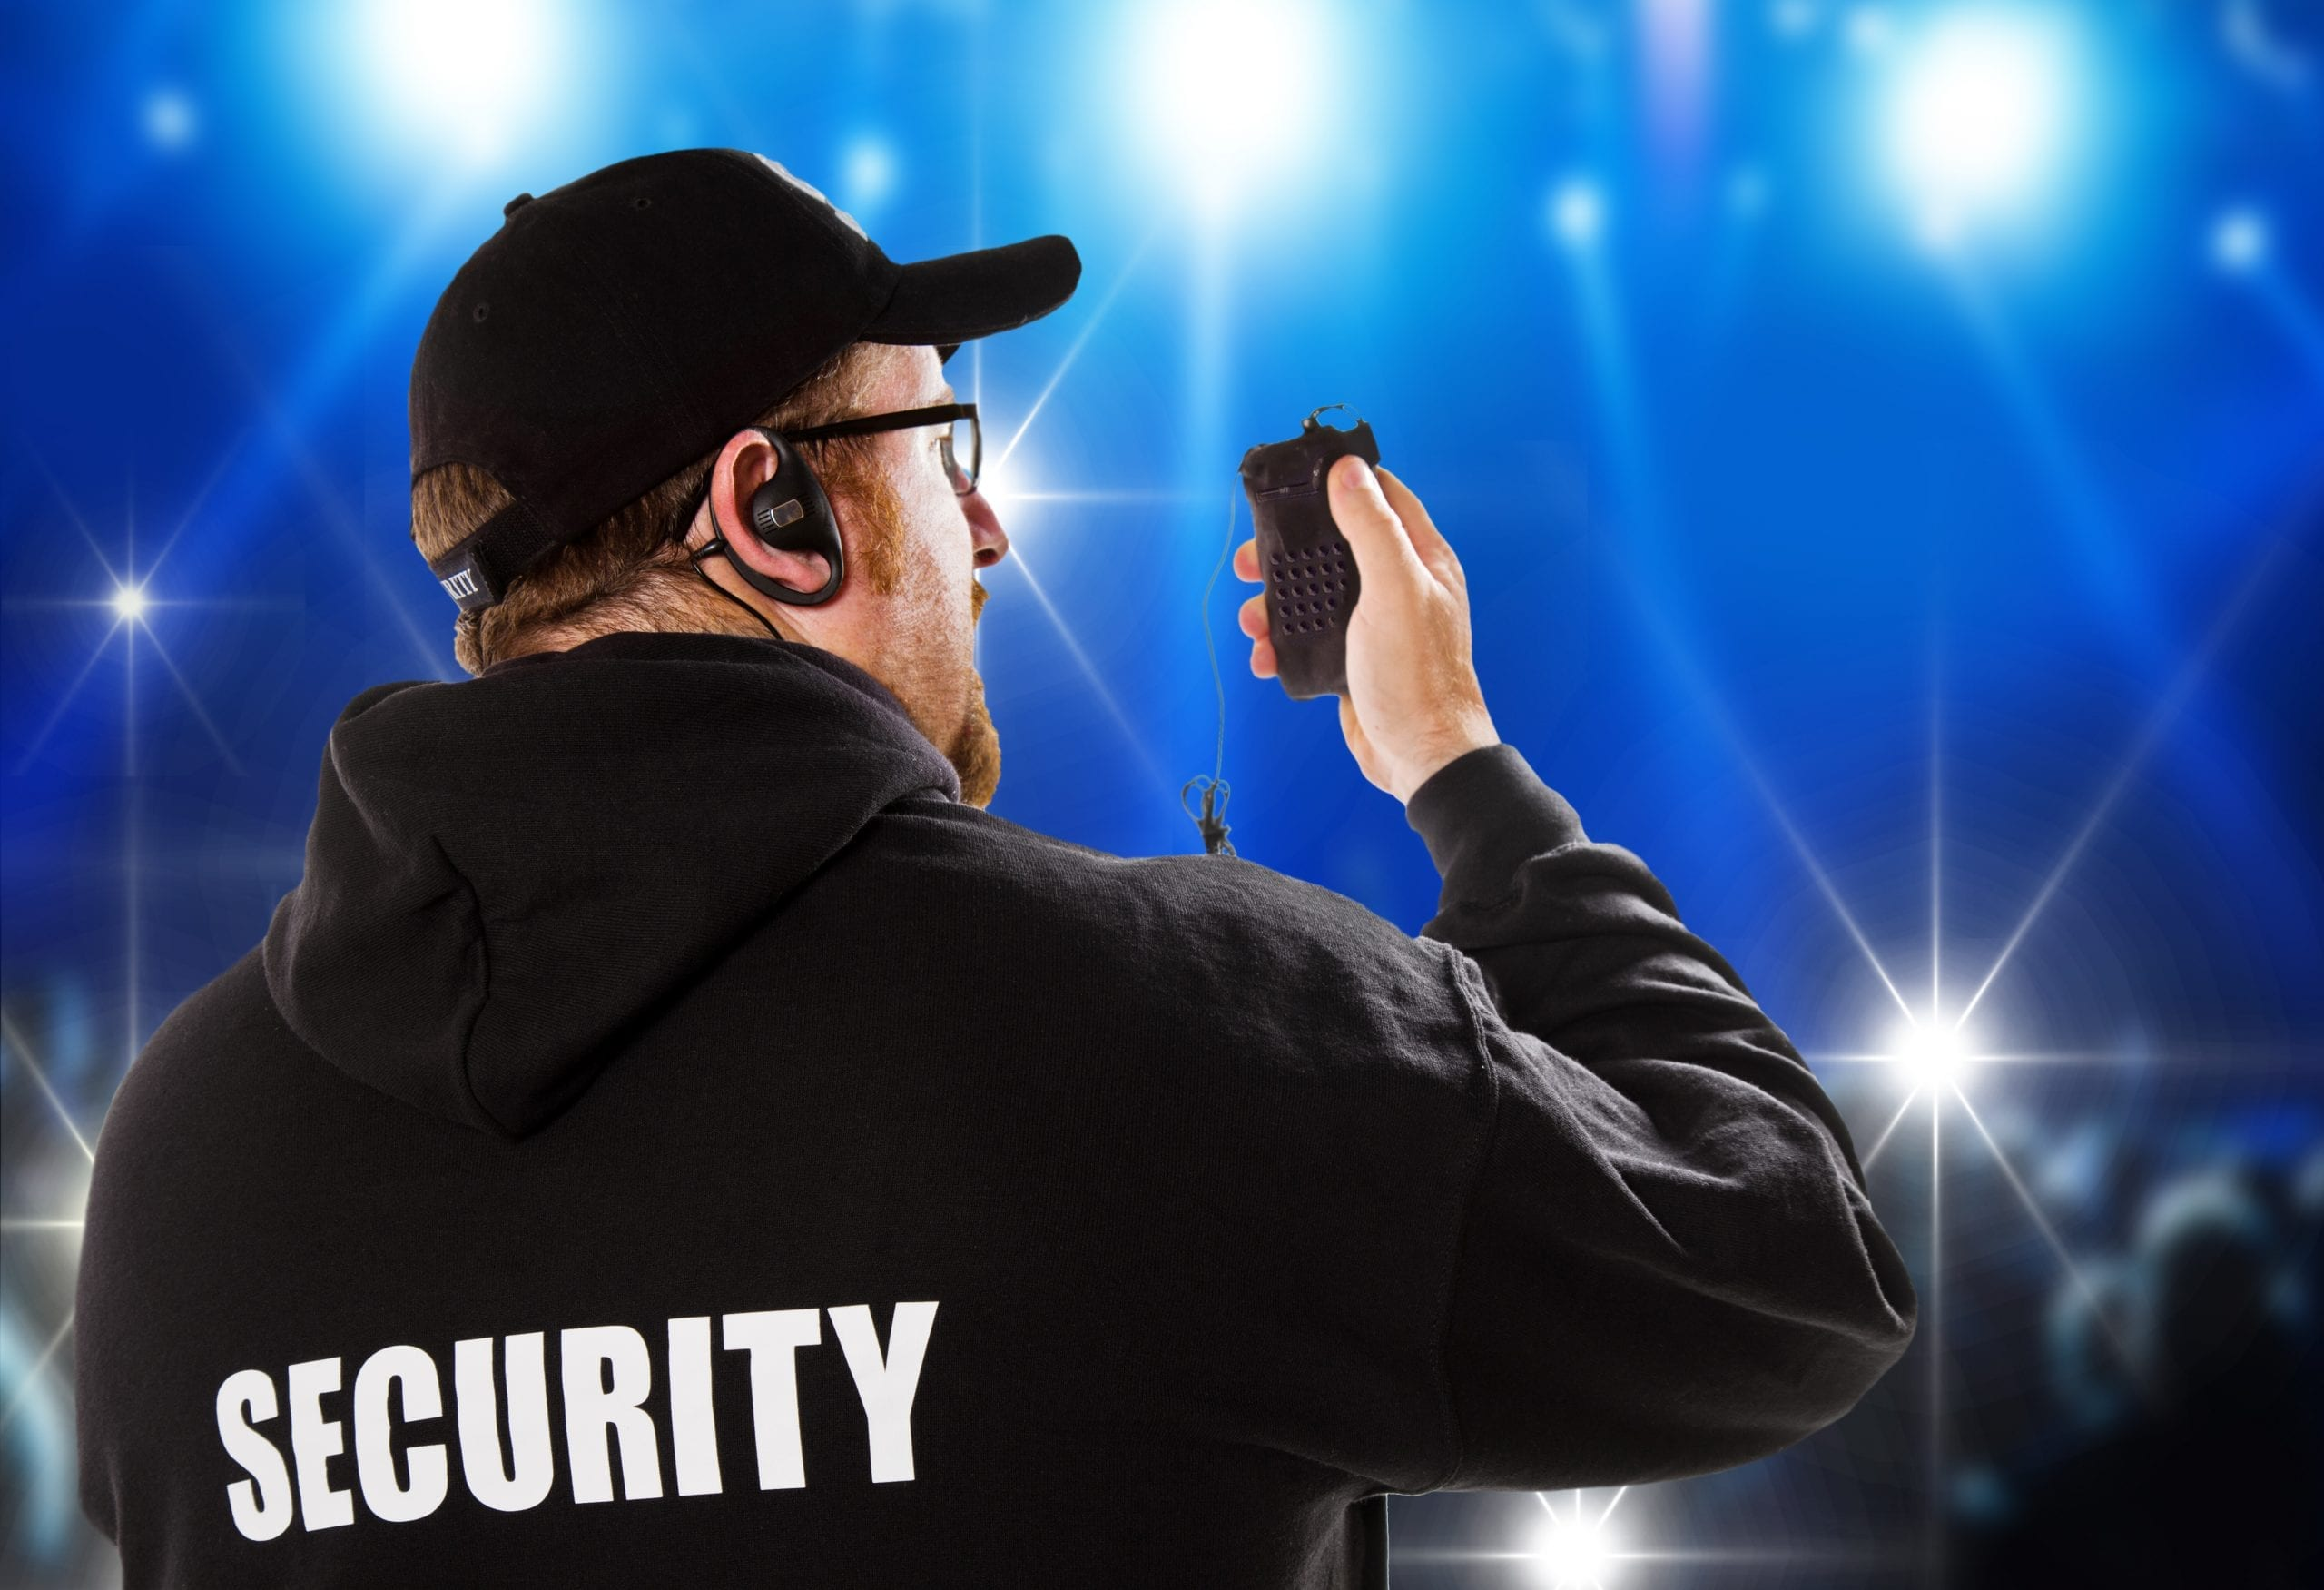 Sporting Events Security